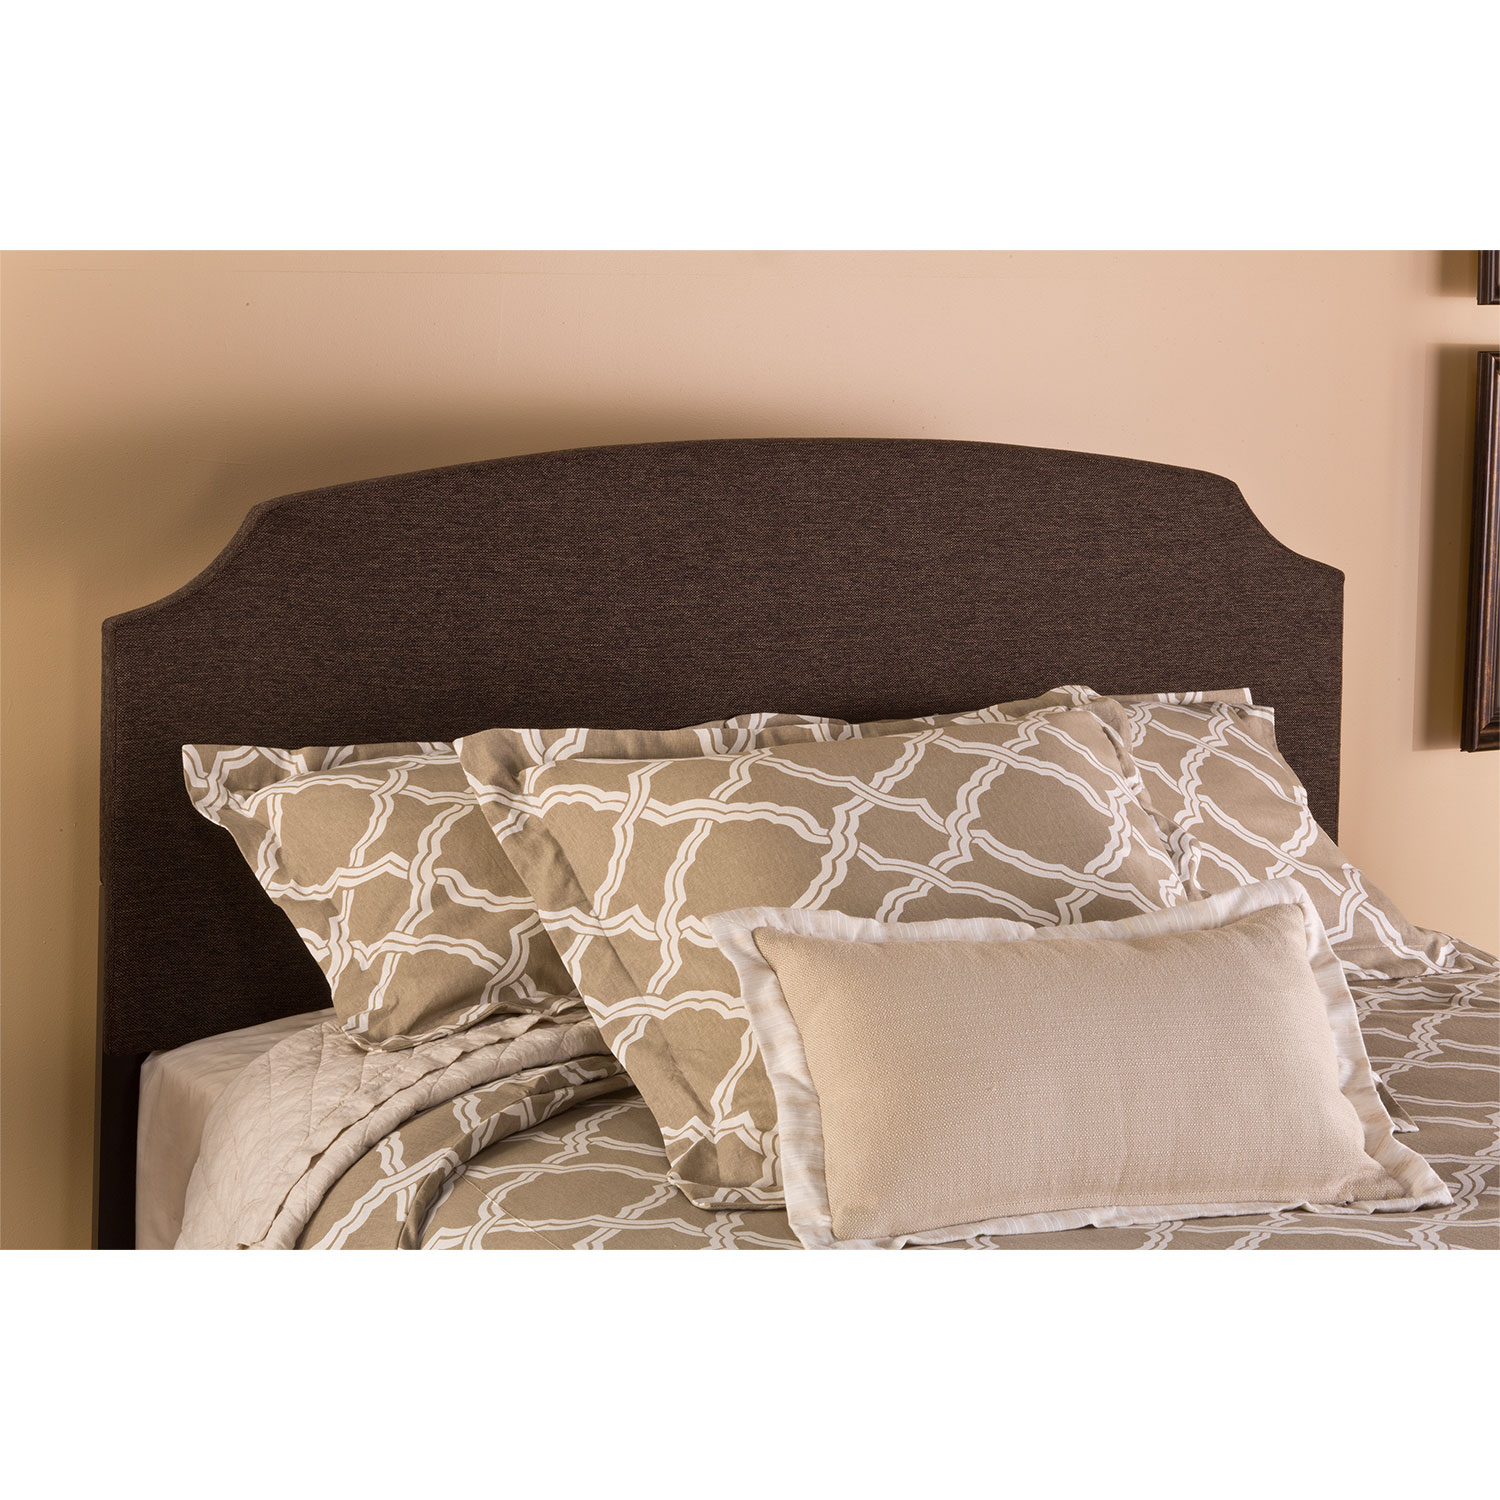 Lawler Queen Headboard - Black